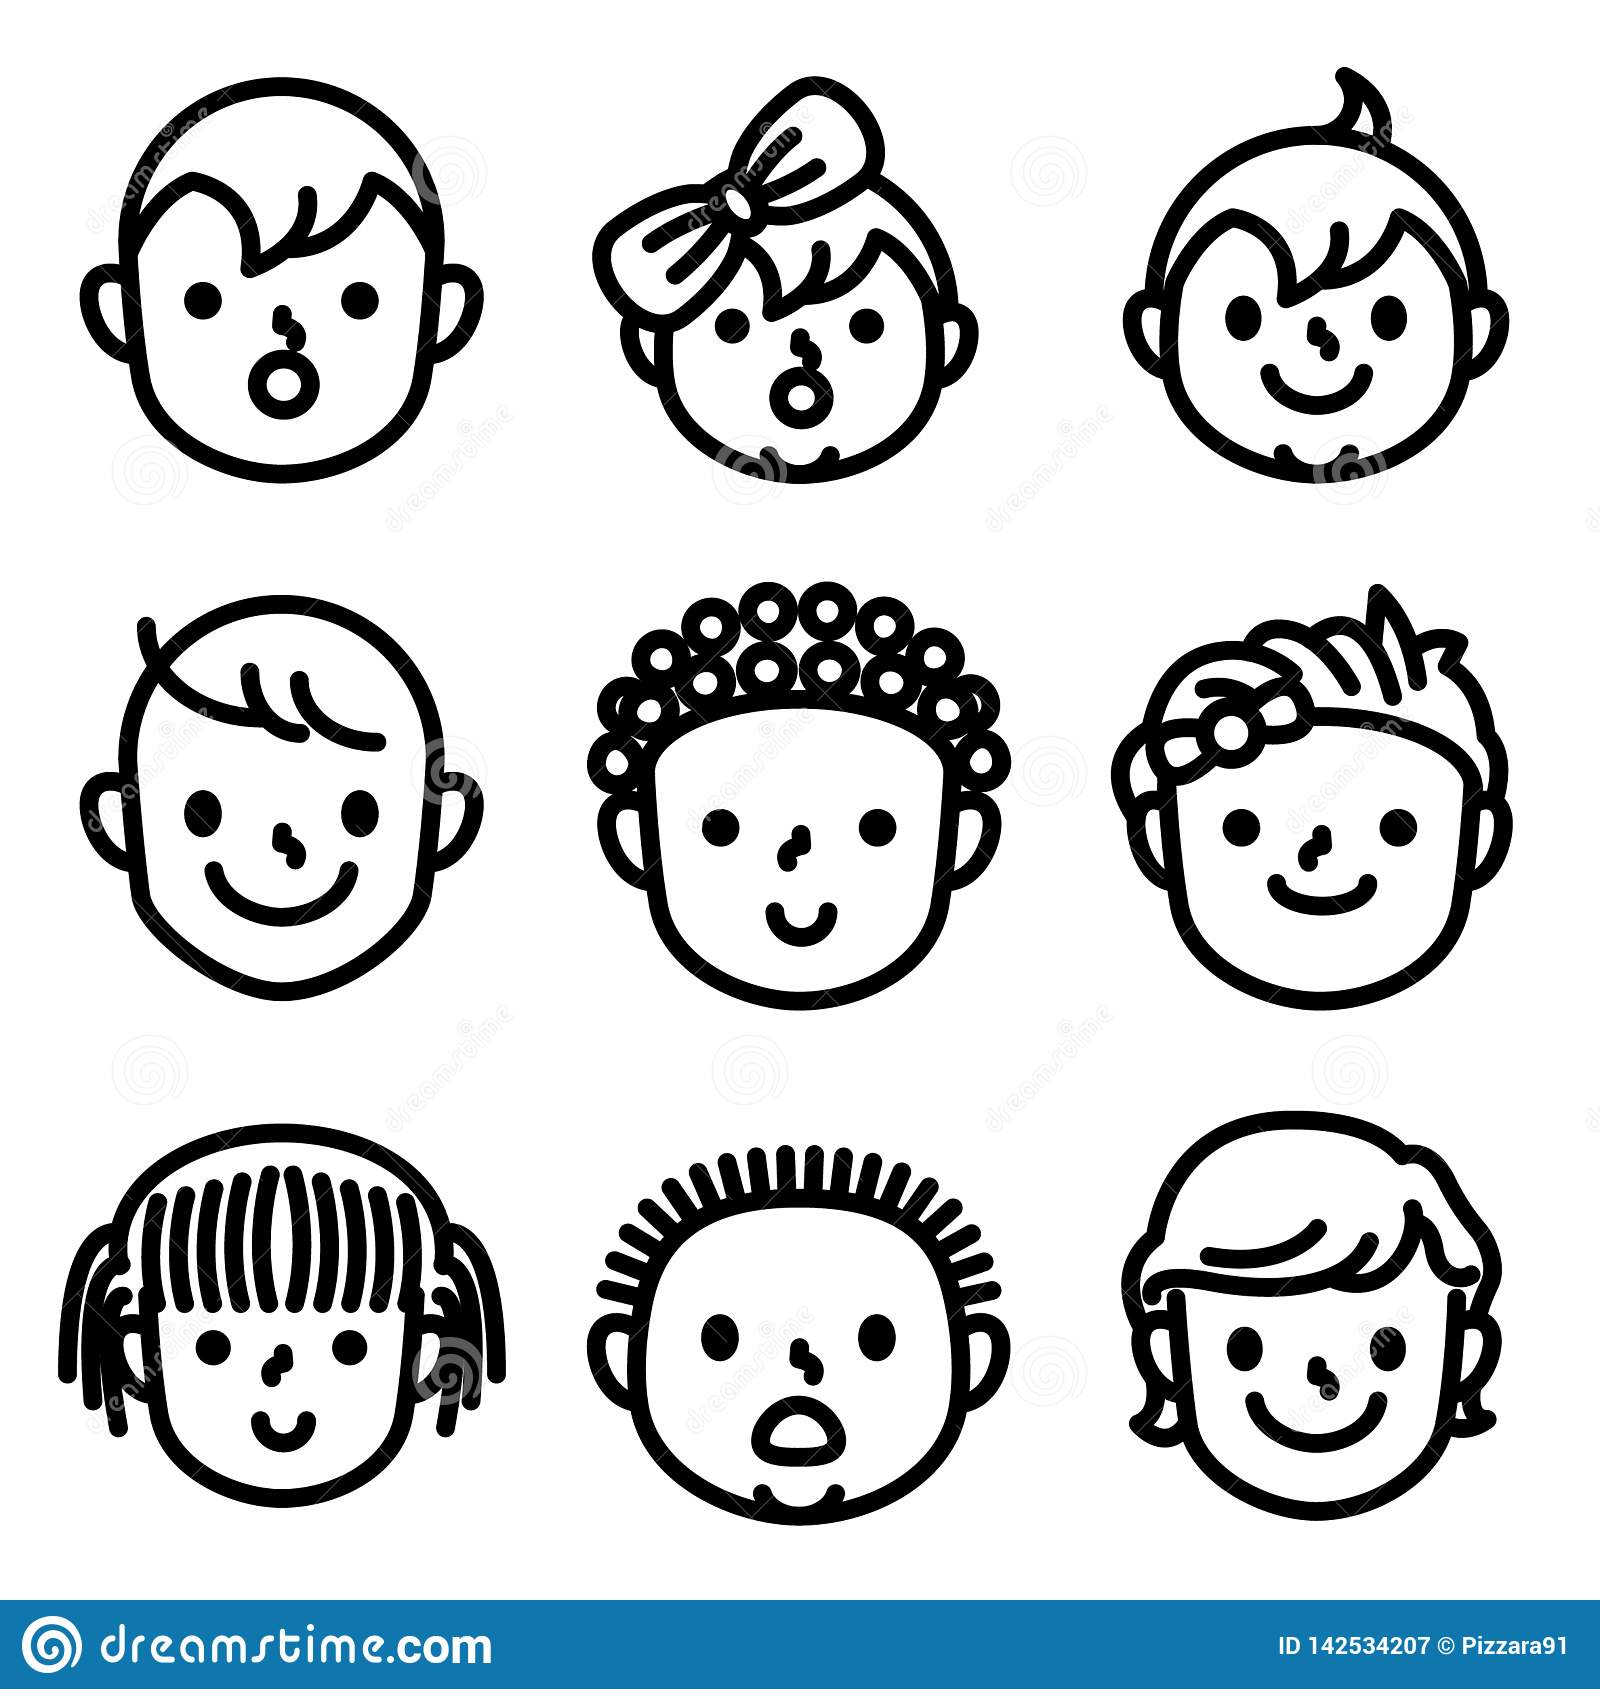 Kids and childs face avatar icons.